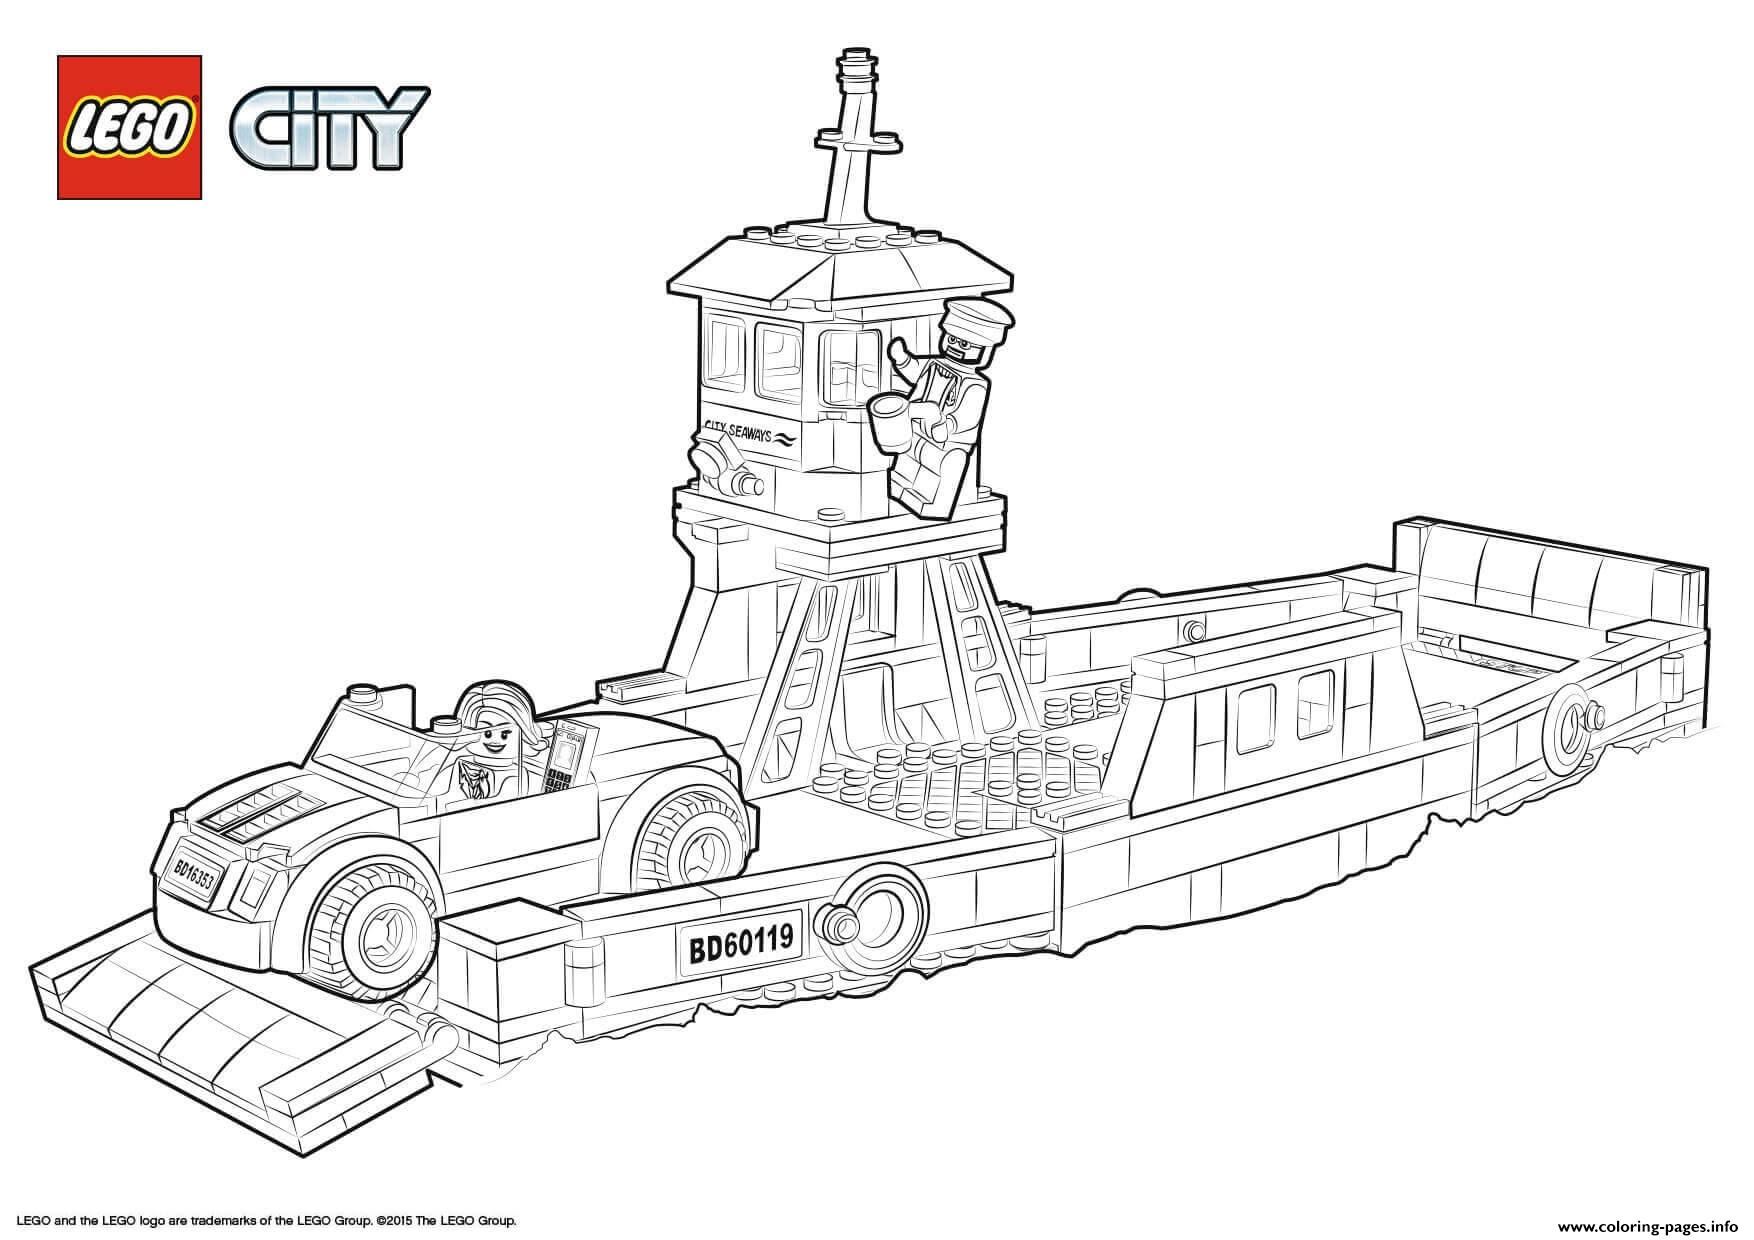 Lego City Boat Transport Ferry Coloring Pages Printable